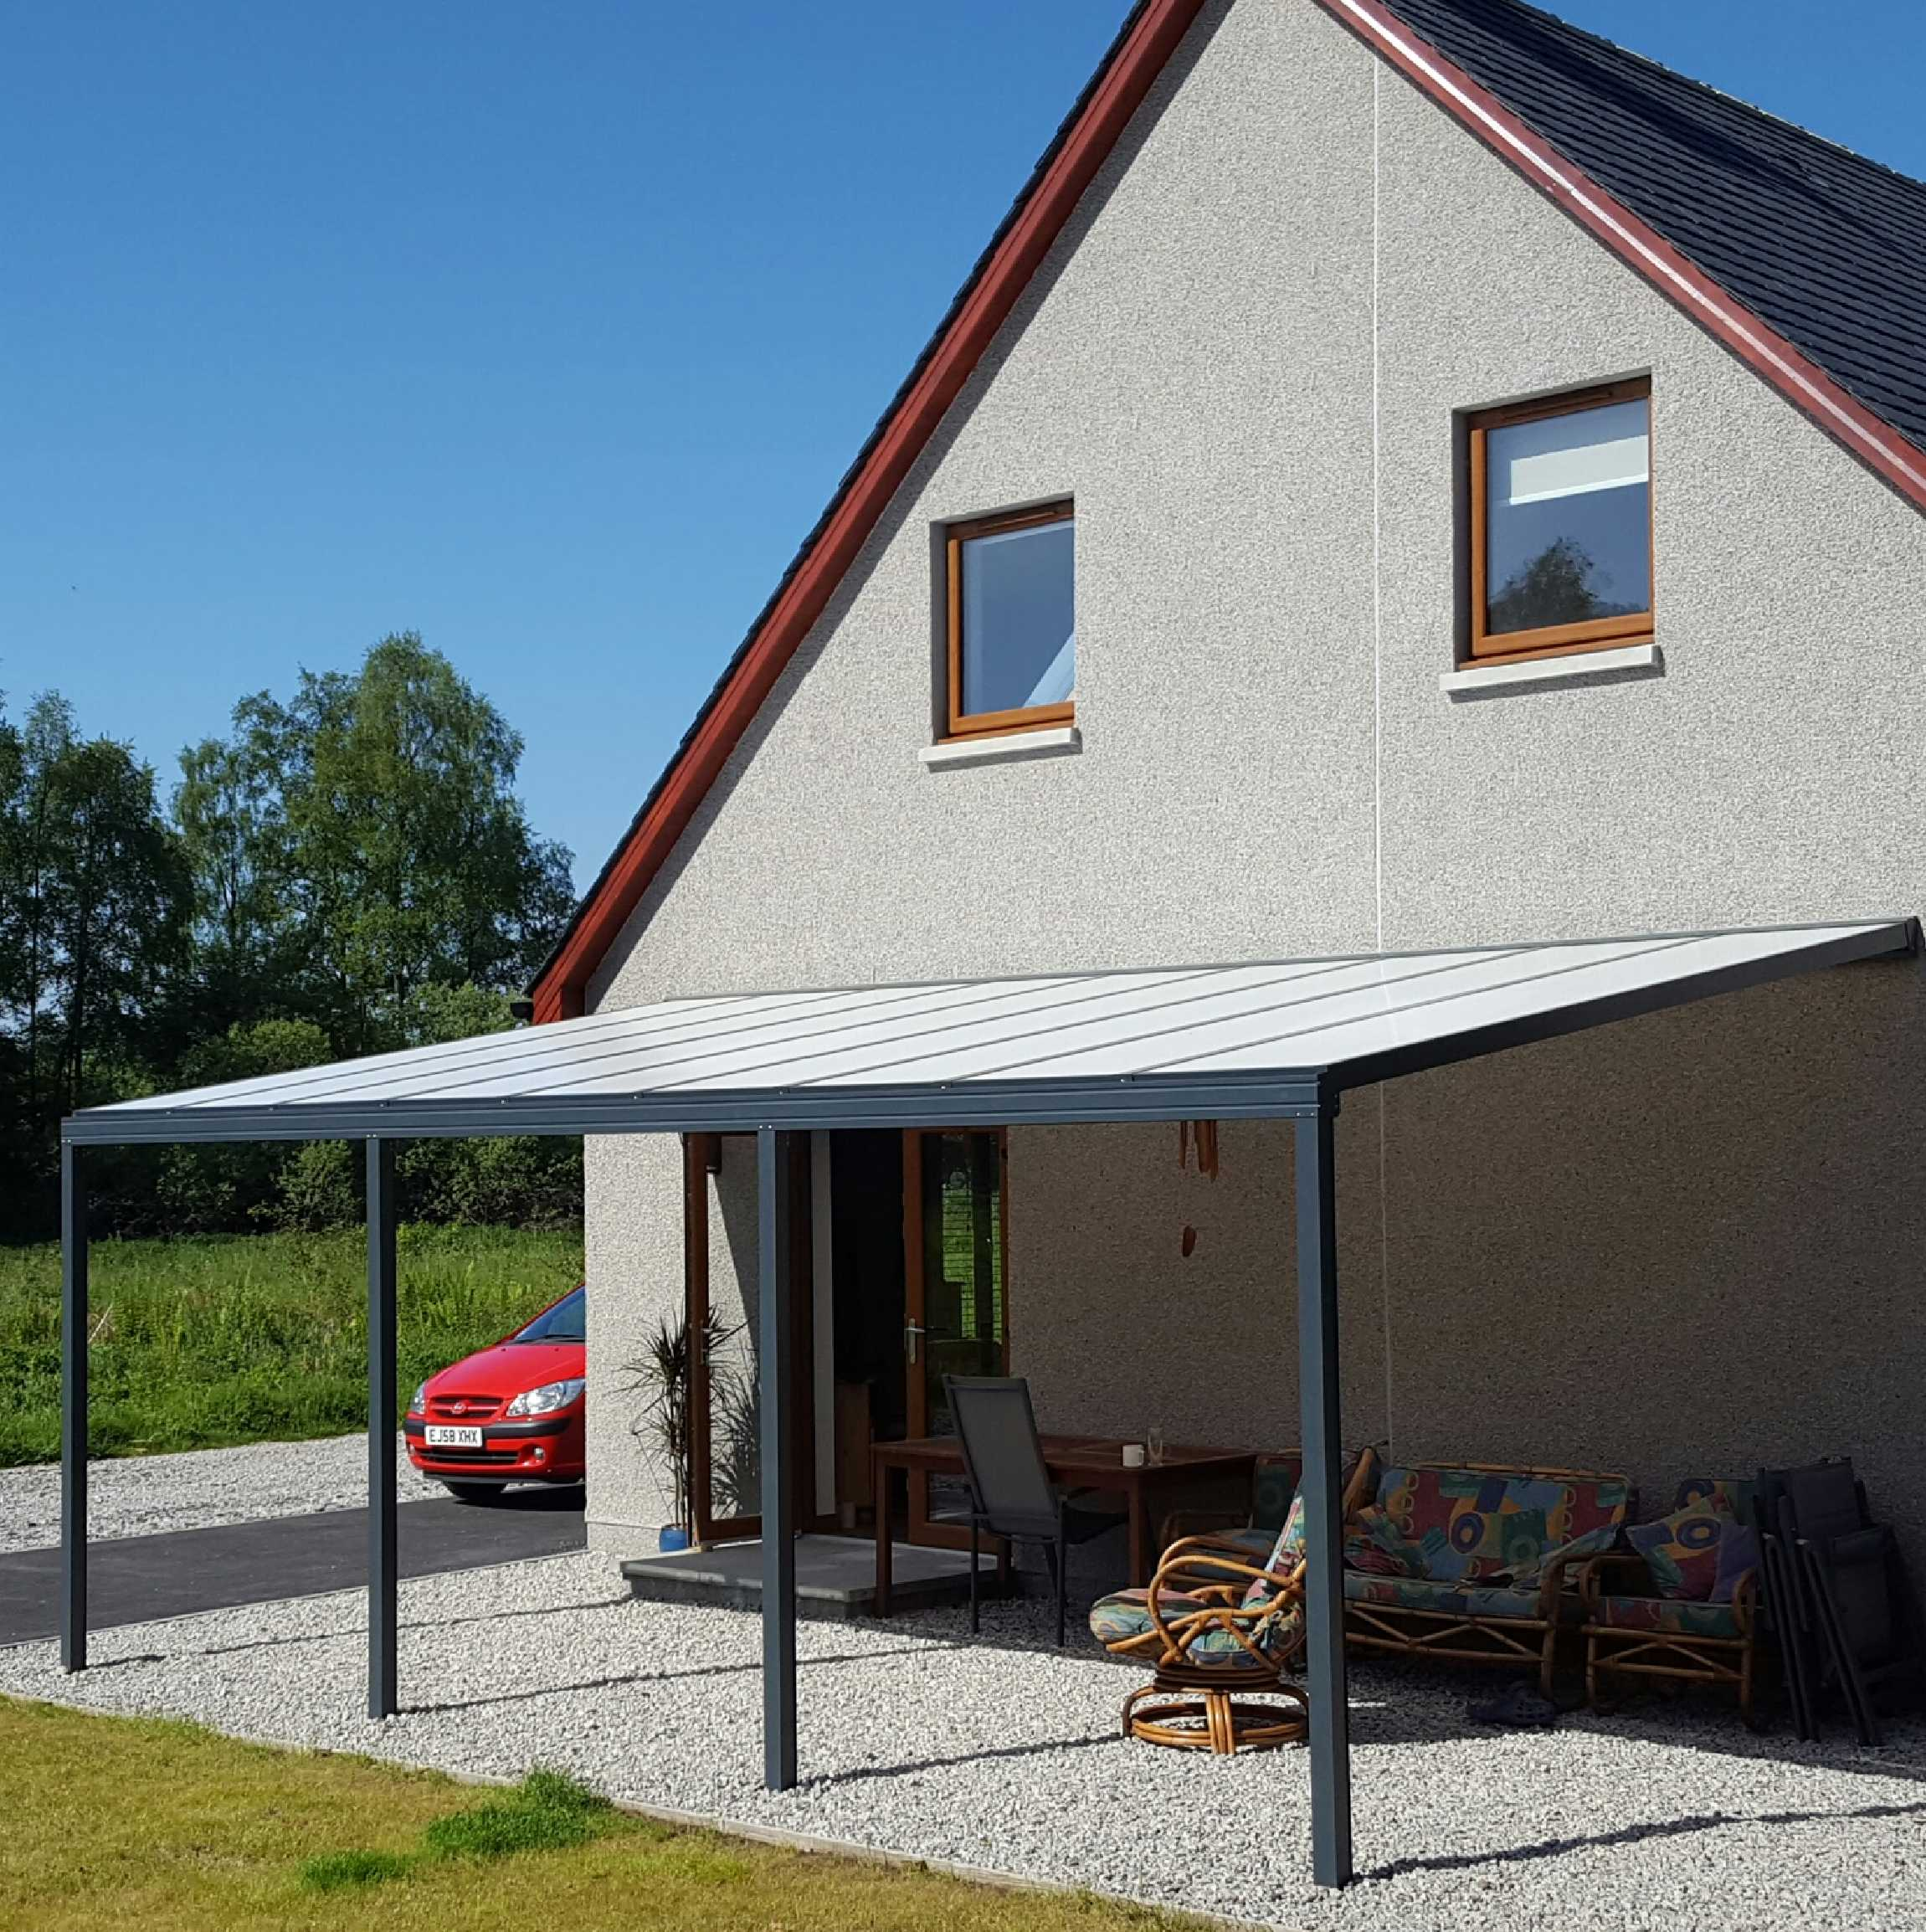 Great selection of Omega Smart Lean-To Canopy, Anthracite Grey, 16mm Polycarbonate Glazing - 5.2m (W) x 2.0m (P), (3) Supporting Posts